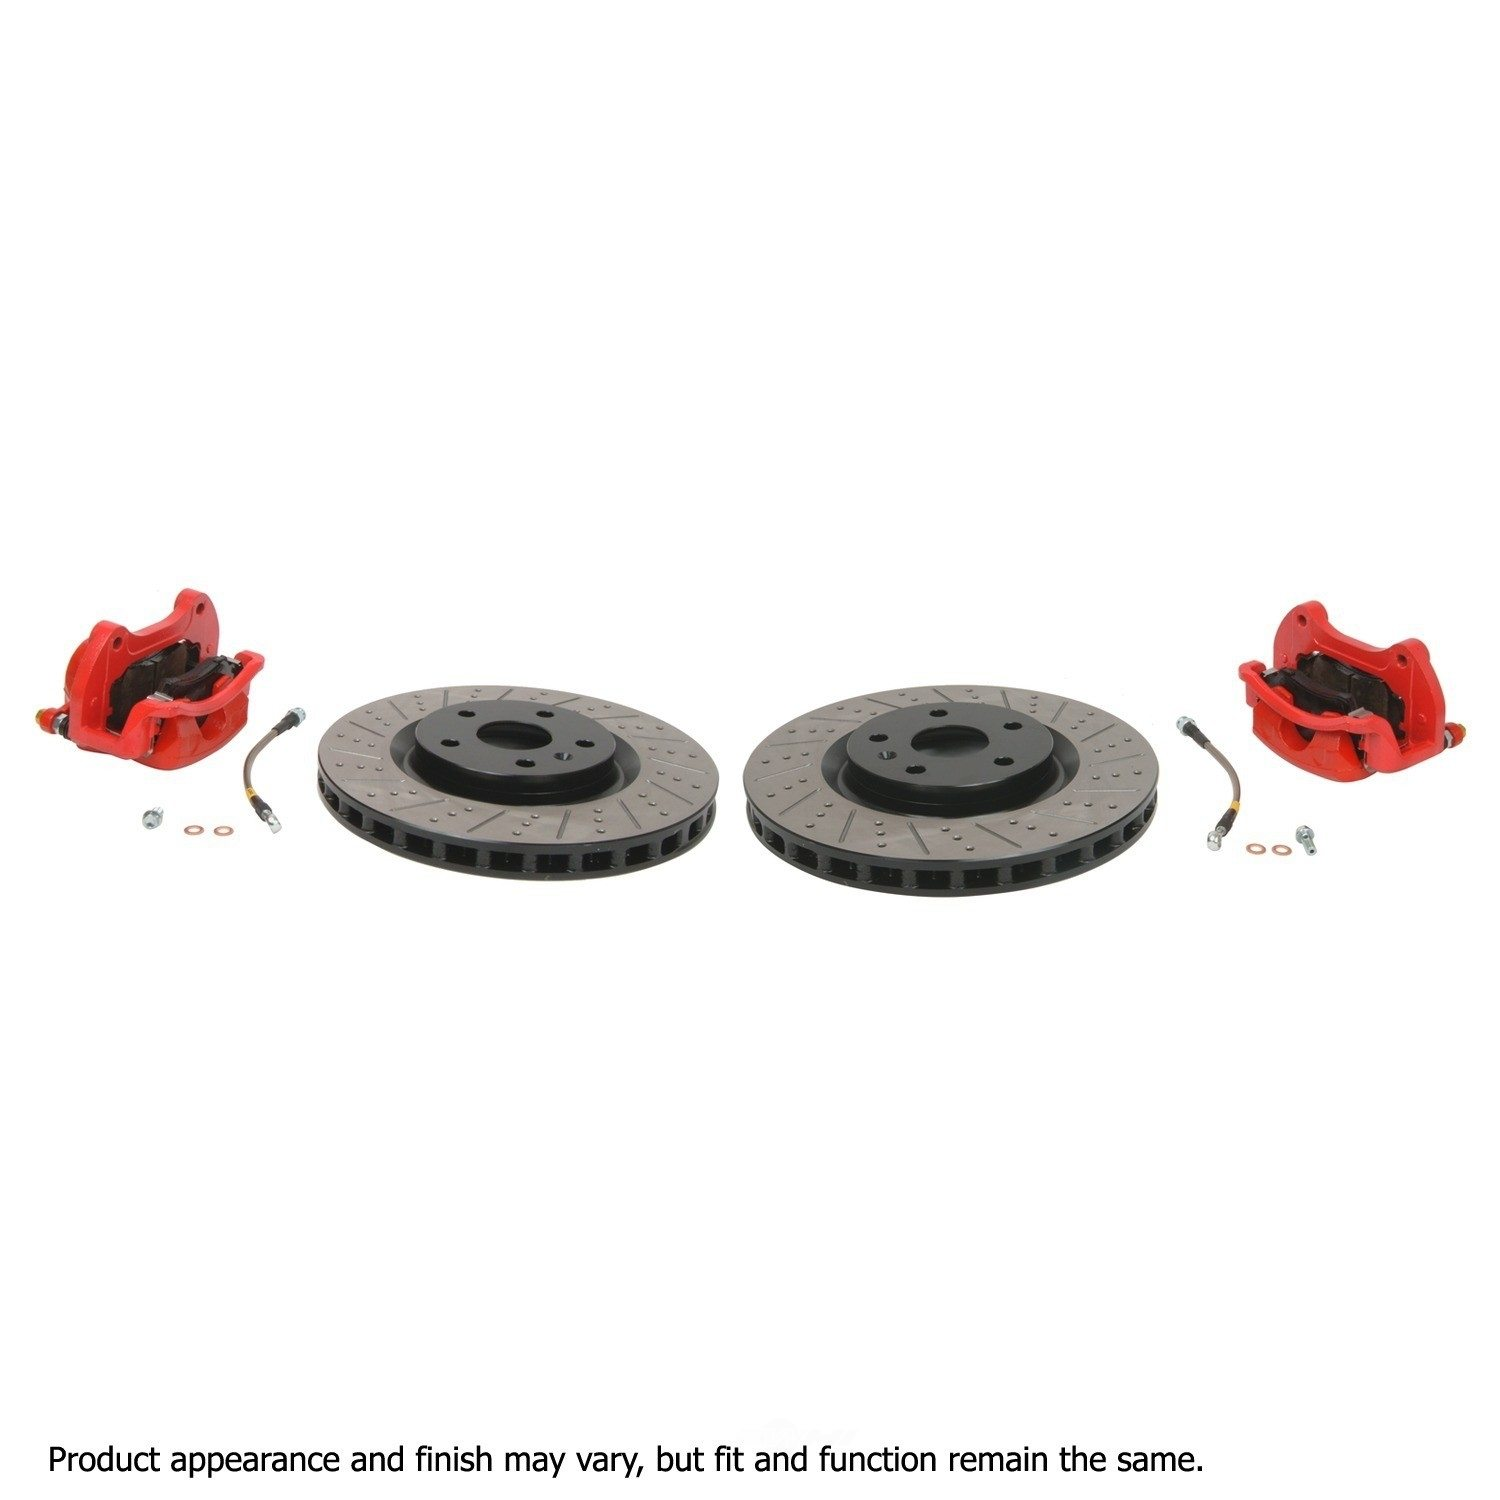 CARDONE/A-1 CARDONE - Reman Performance Brake Upgrade Kit (Front) - A1C 2B-9020XR